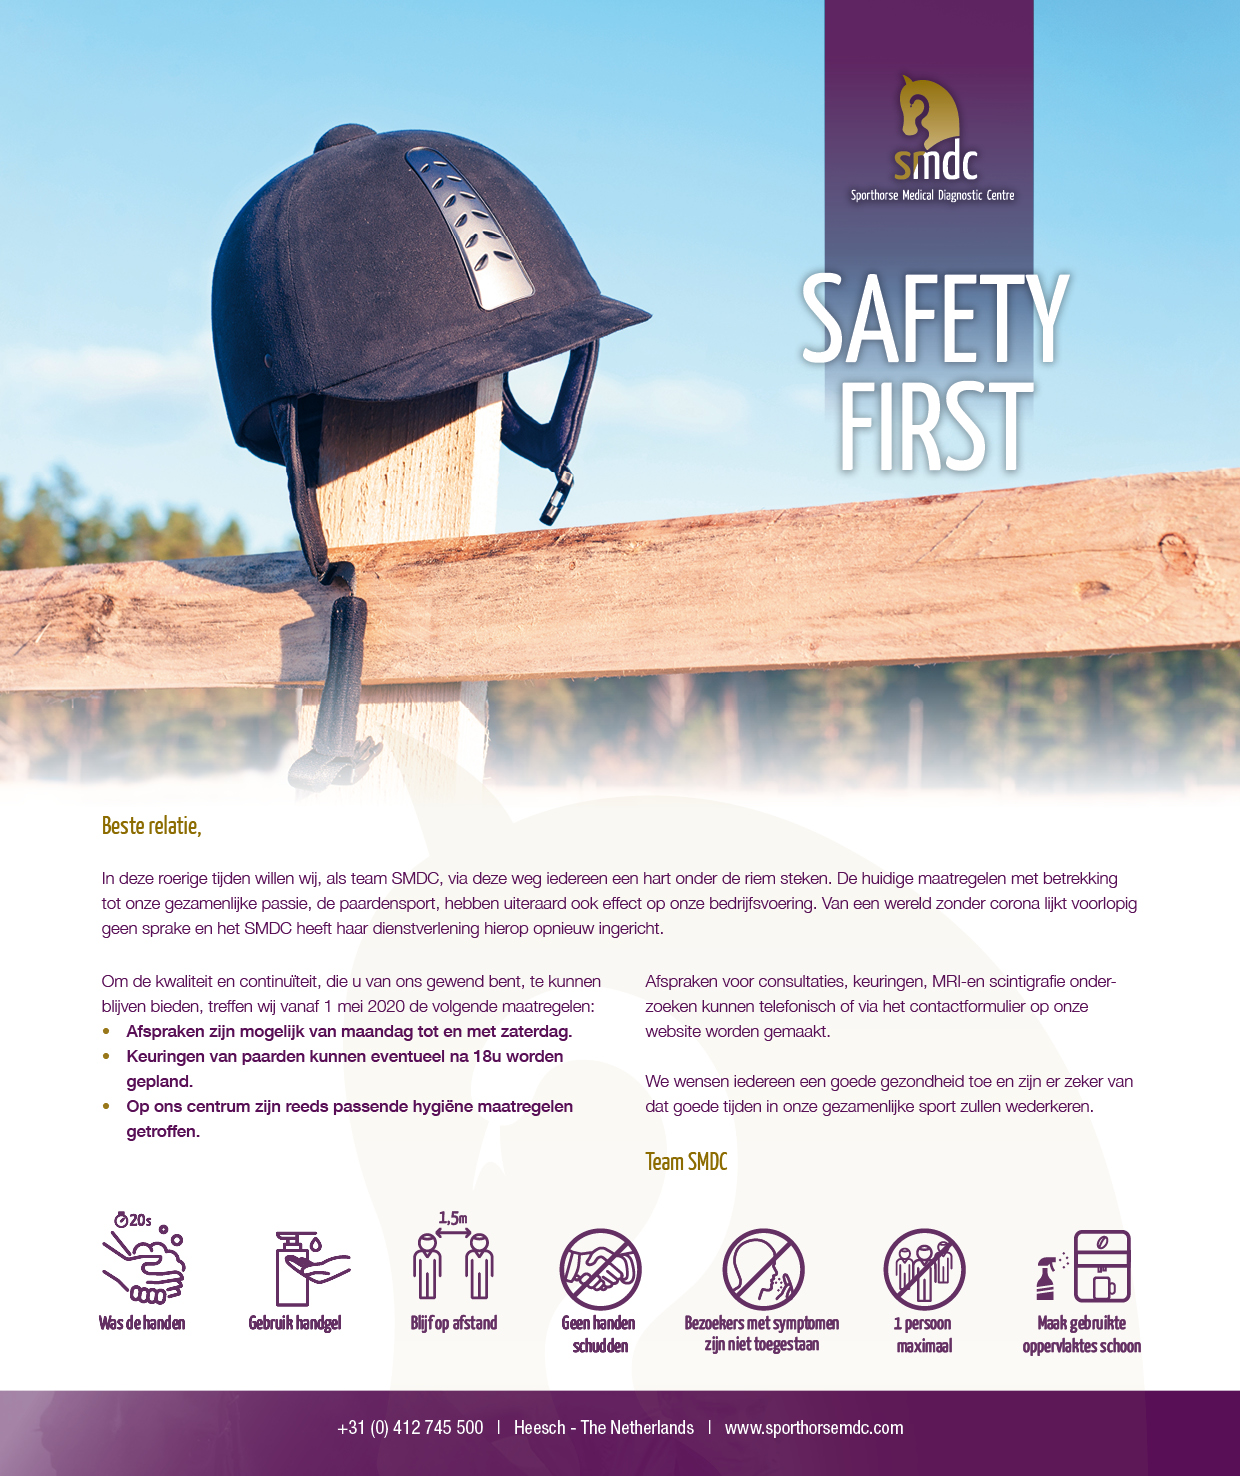 smdc-altano-corona-covid19-safety-first-nl